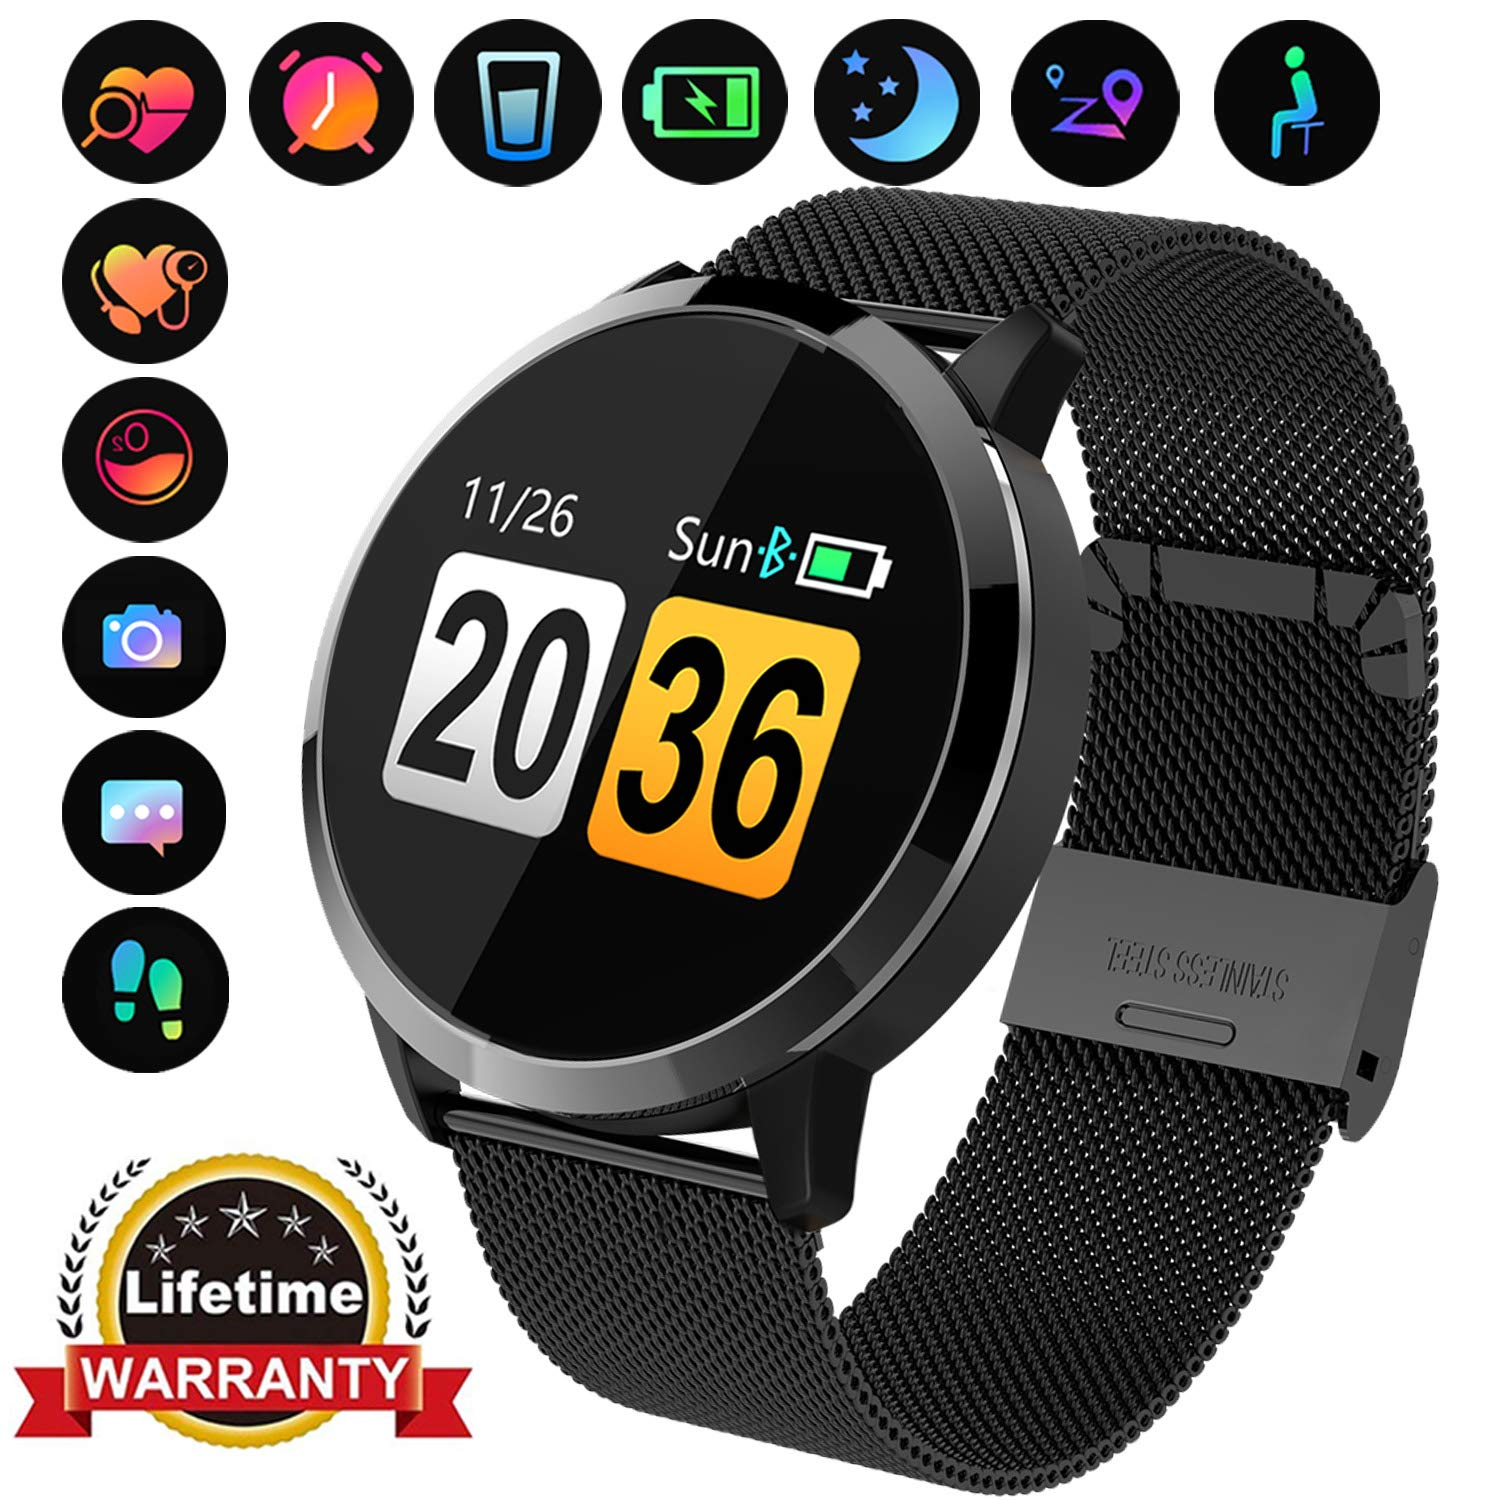 Fitness Tracker with Blood Pressure Monitor Bluetooth Smart Watch with Camera Touchscreen Waterproof Smartwatch Android iOS Heart Rate and Activity ...